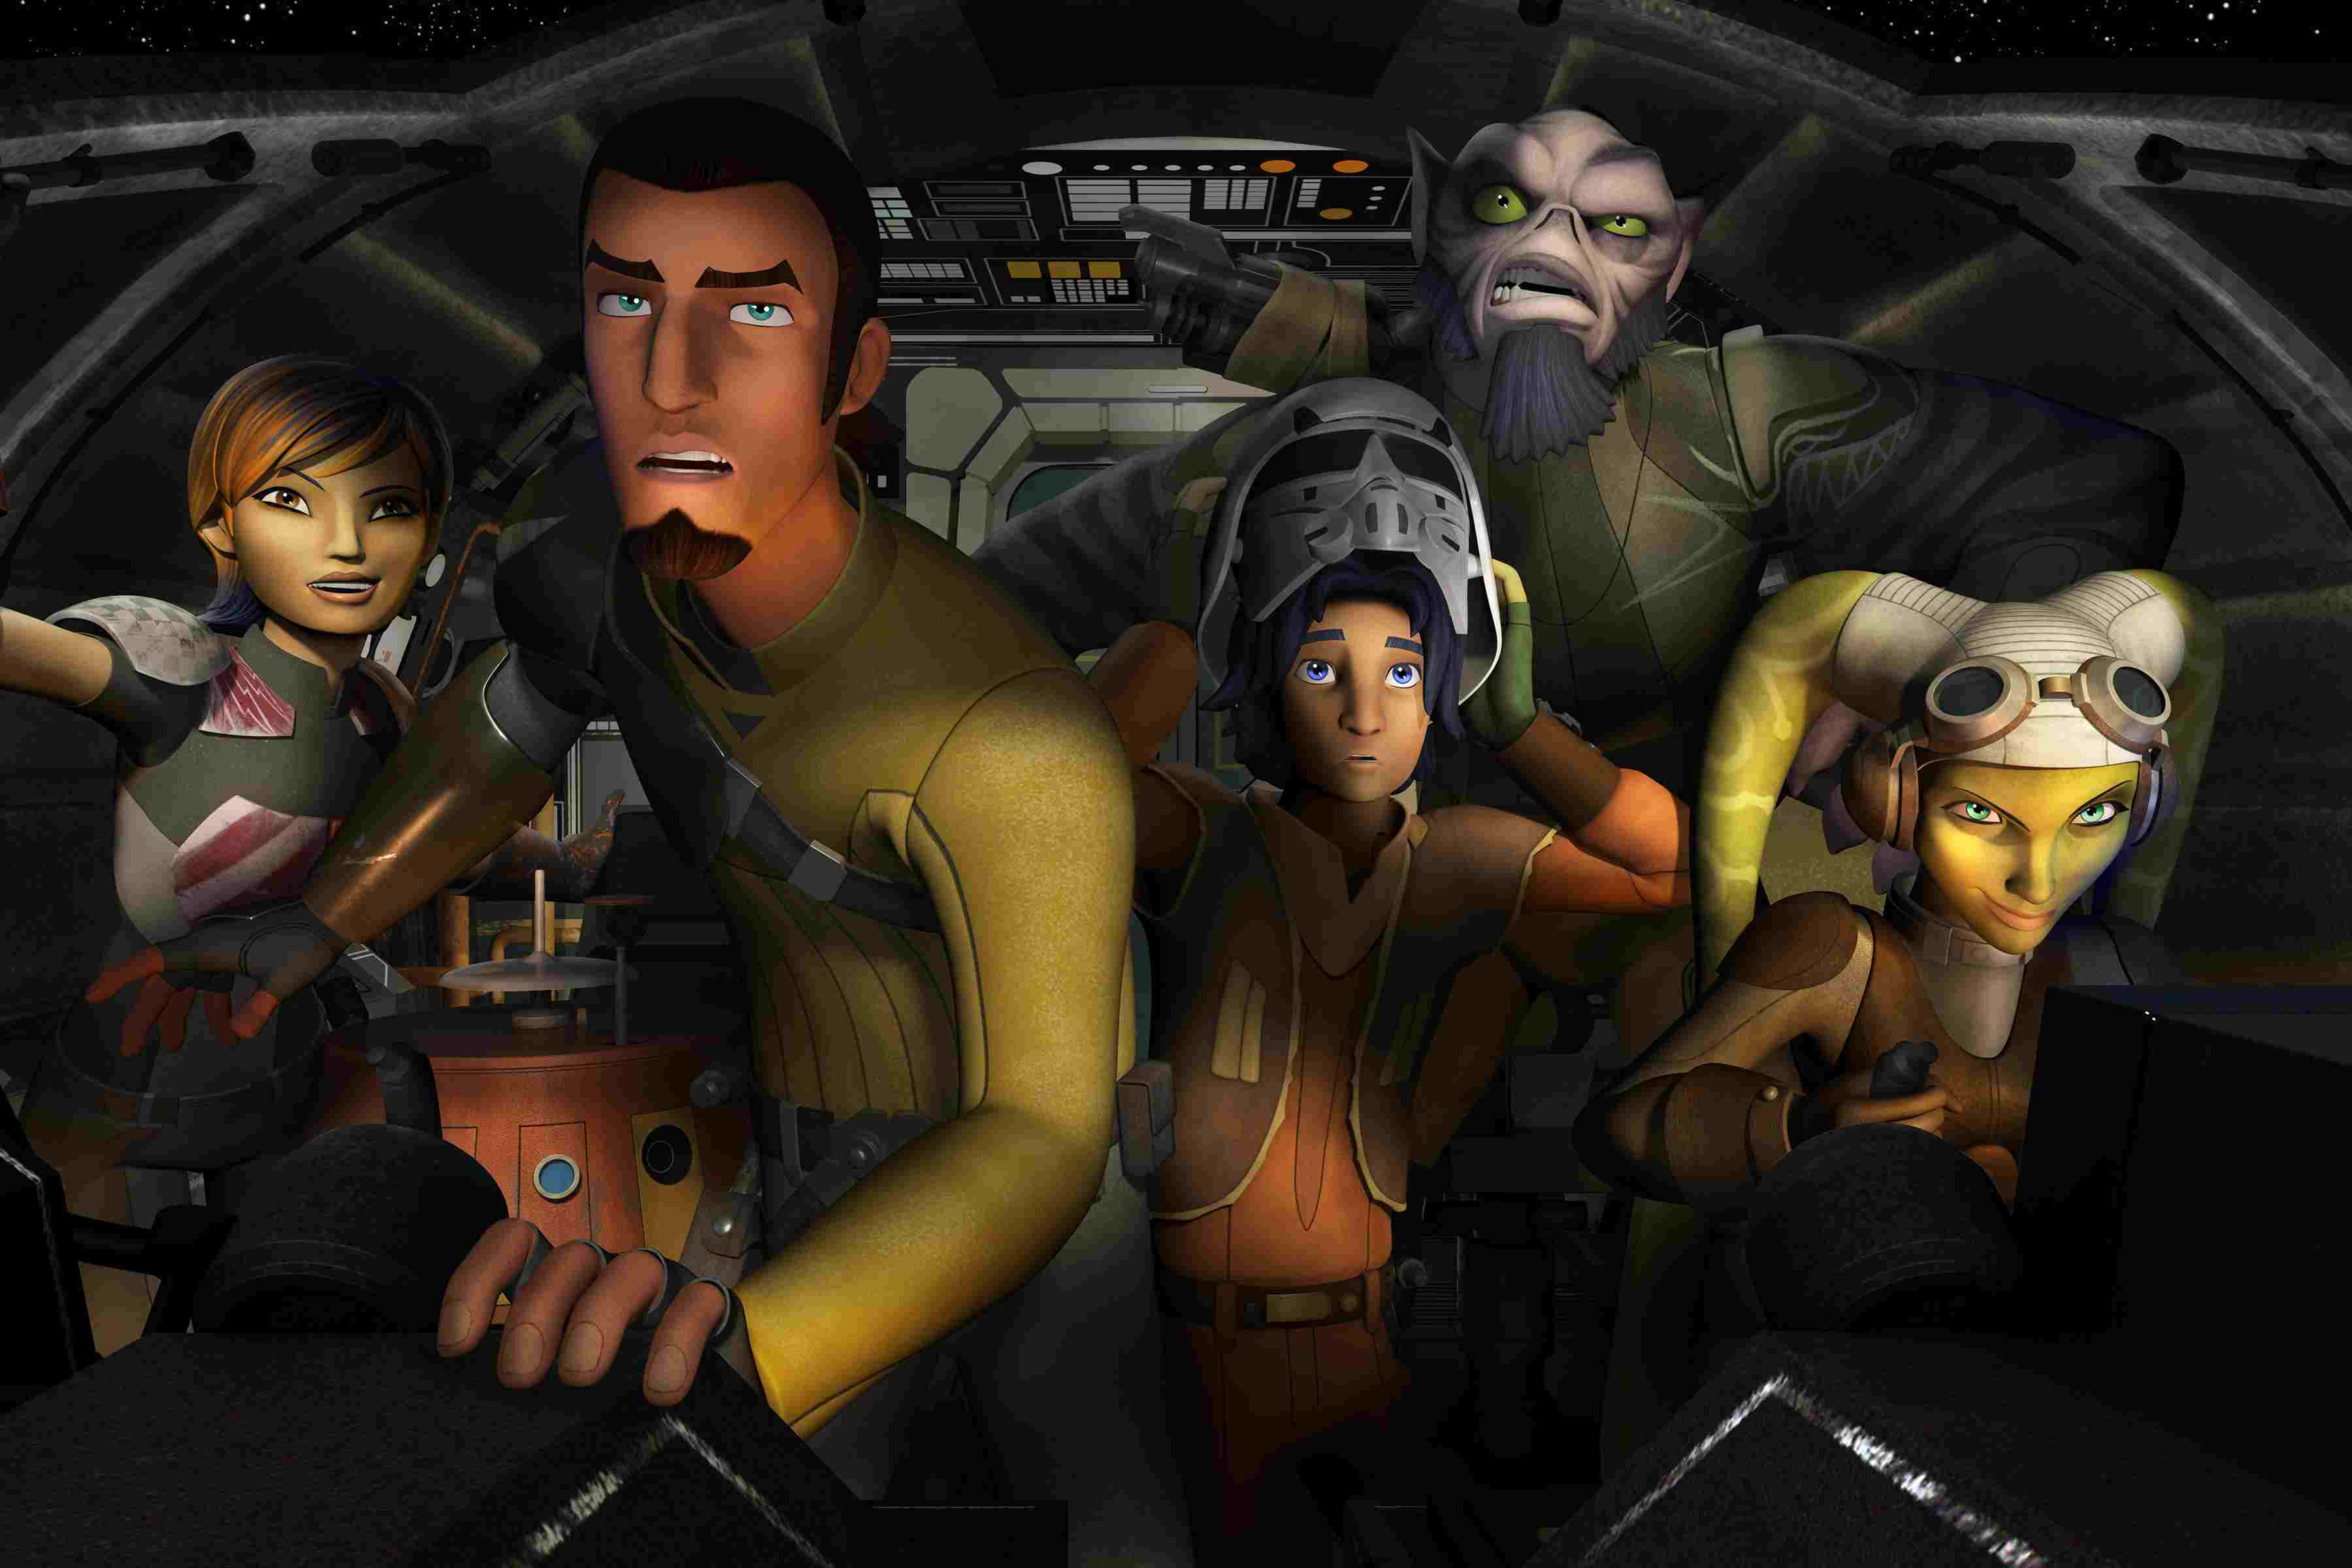 What 'Star Wars Rebels' is All About